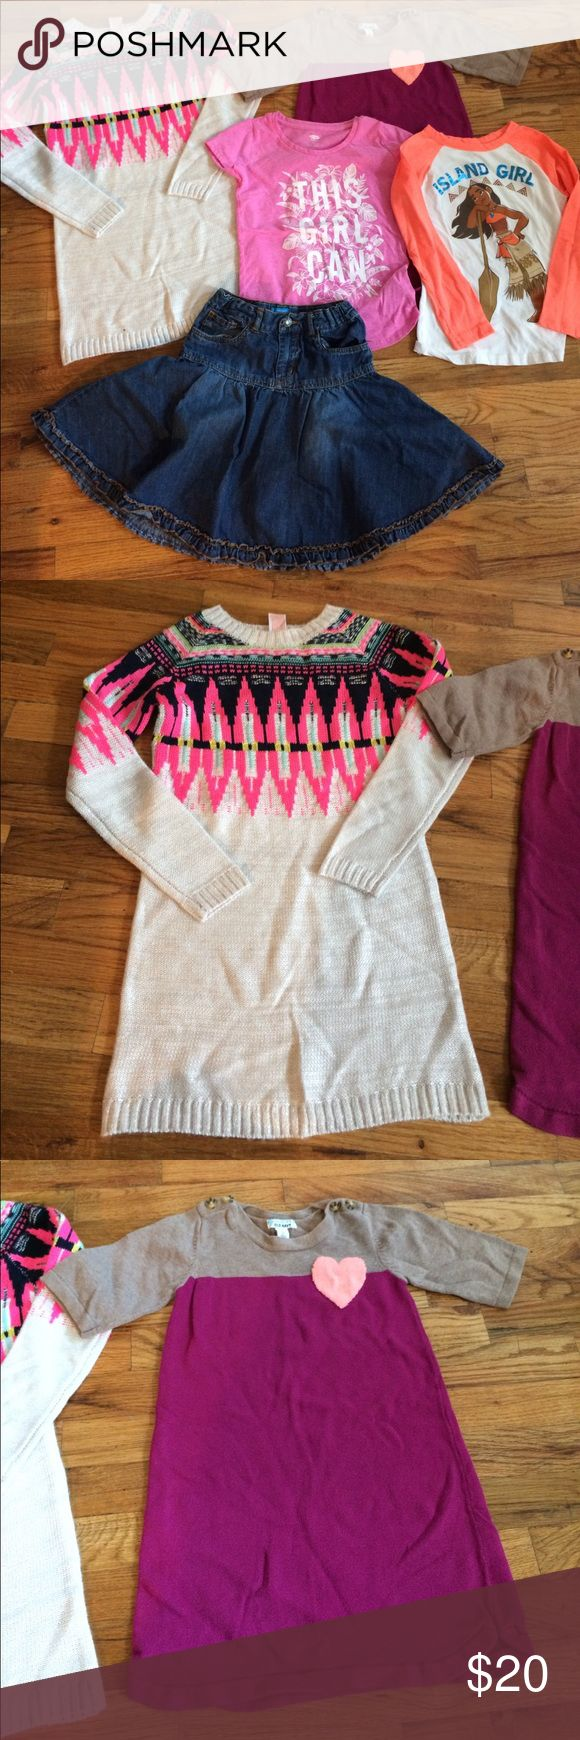 Girls 6x bundle 5 items for girls size 6x including a new without tags Cat and Jack sweater dress and Moana Disney tee and pink This girl can tee. All in great shape. Denim skirt with ruffle is Children's Place and heart sweater dress from Old Navy. No stains or holes. Great clothes! Disney Shirts & Tops Tees - Long Sleeve